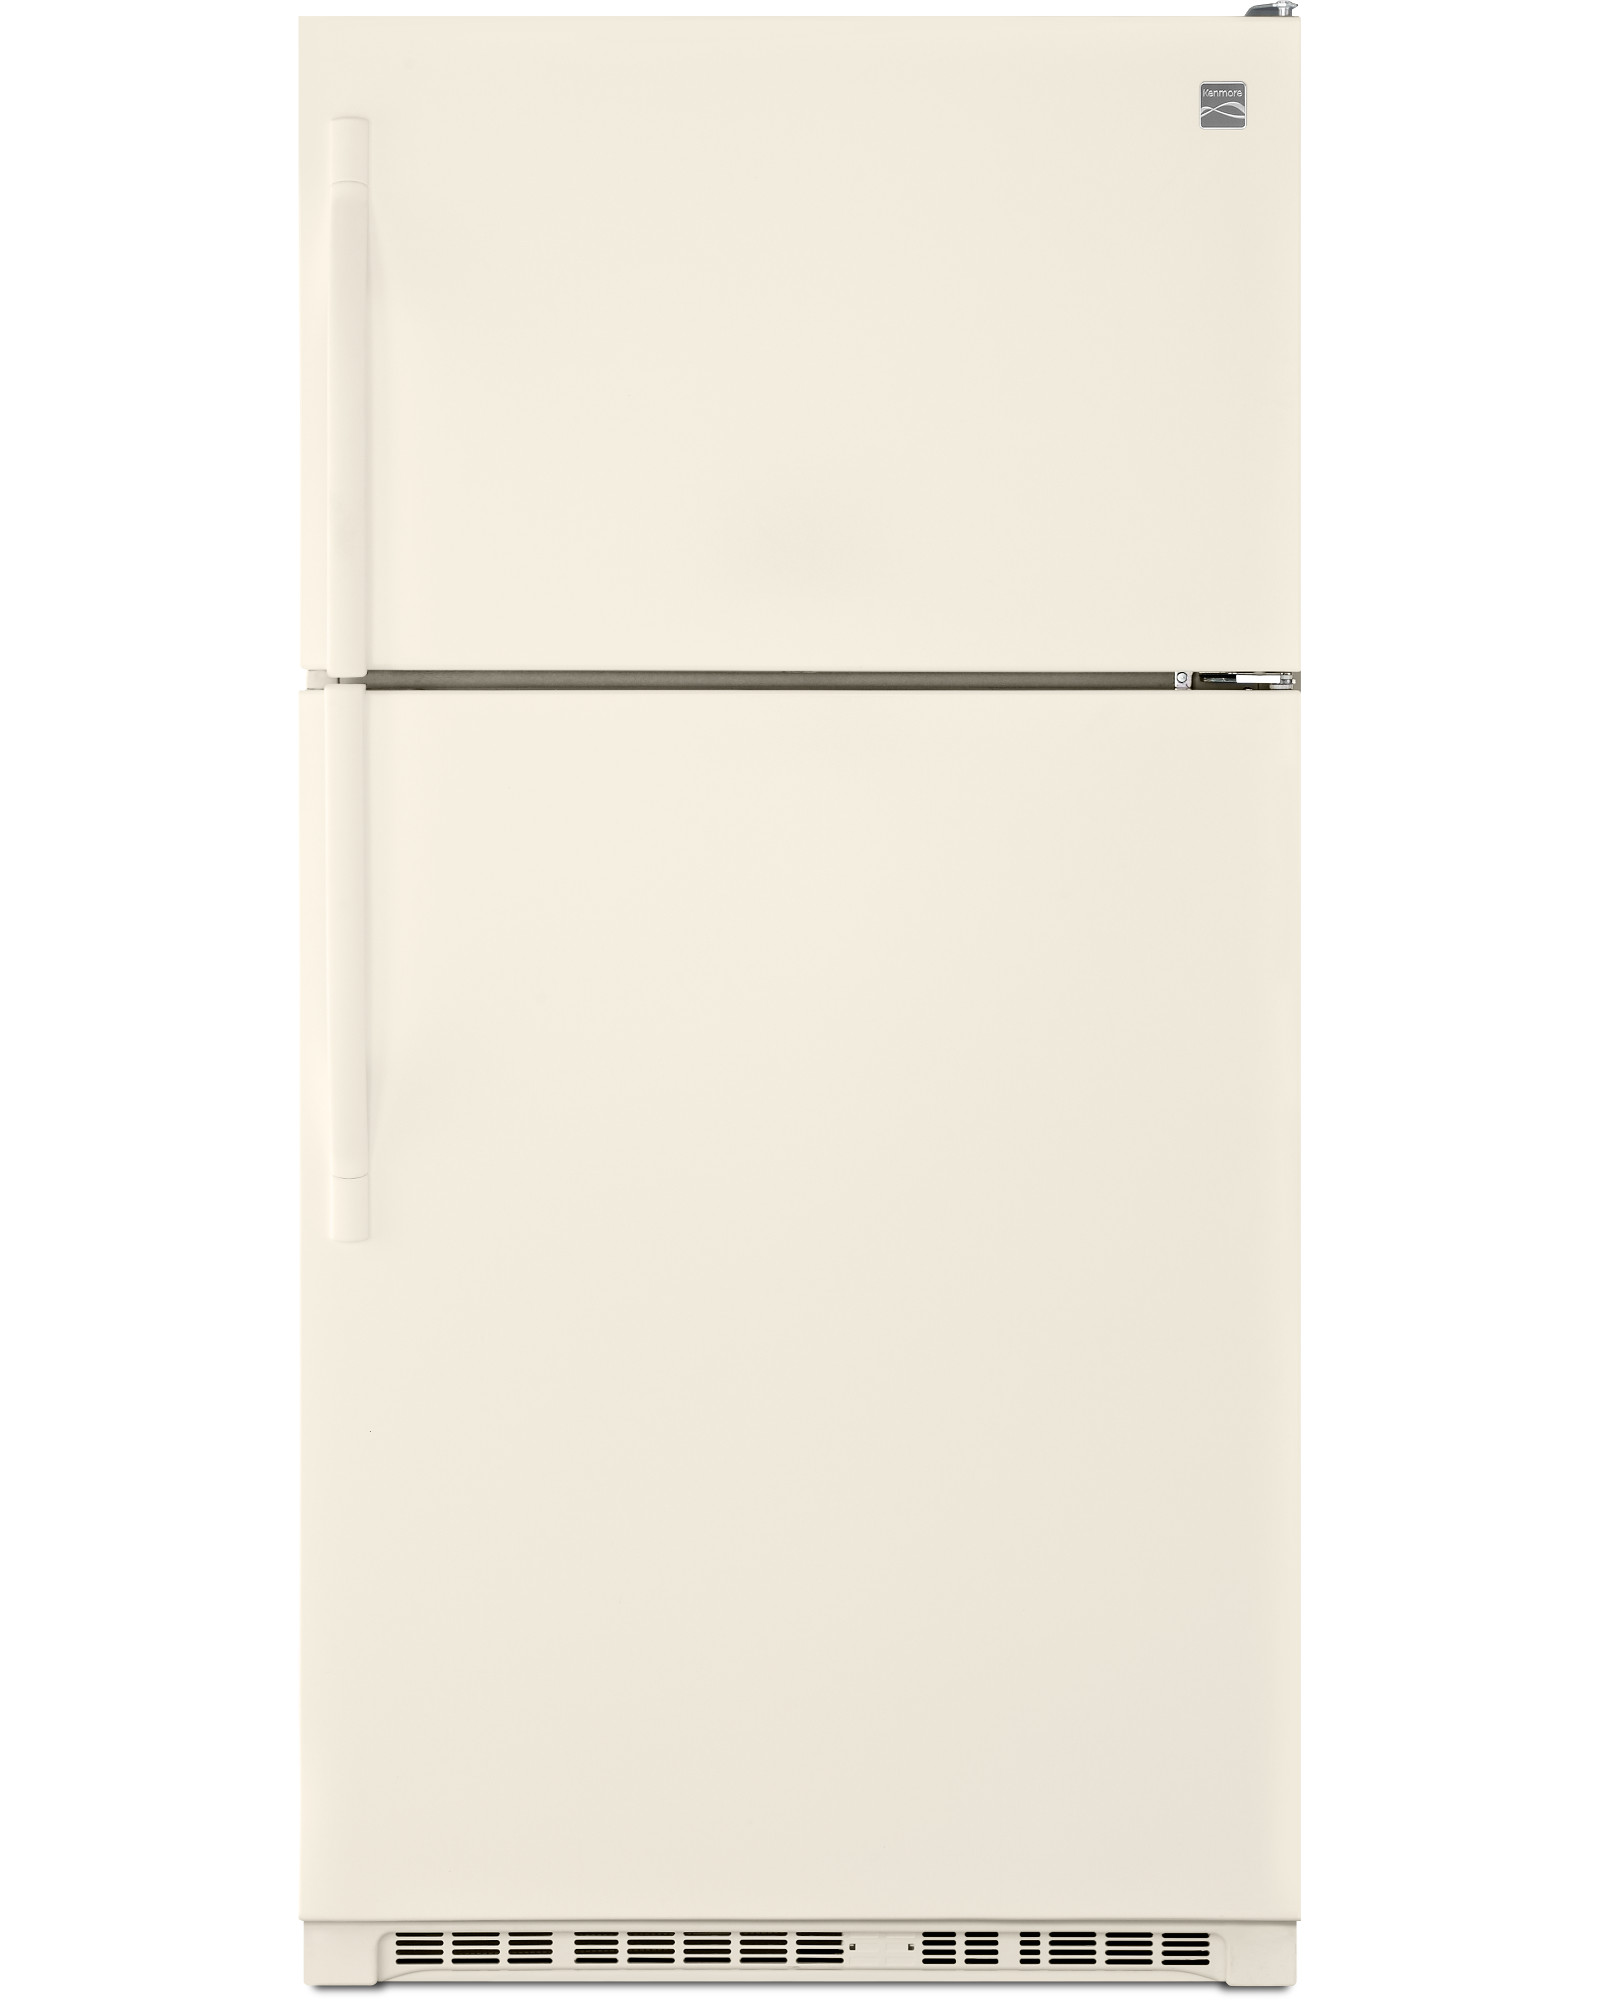 Kenmore 60214 20.5 cu. ft. Top Freezer Refrigerator w/ Humidity-Controlled Crispers - Biscuit